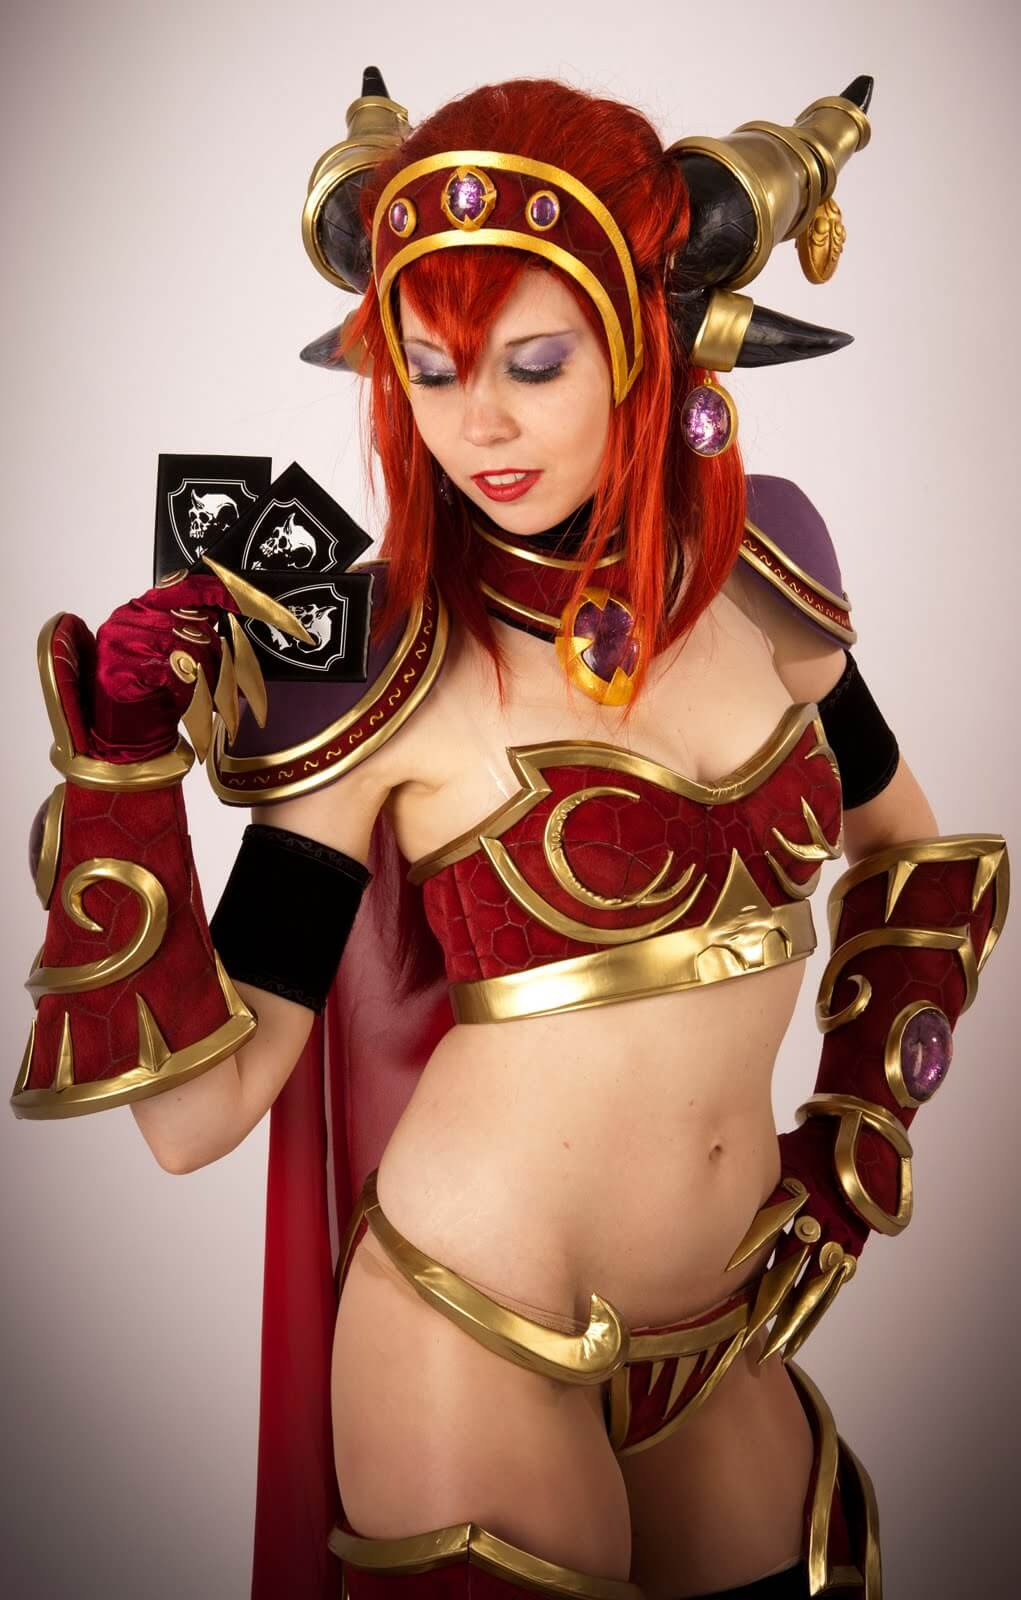 Alexstrasza sexy boobs